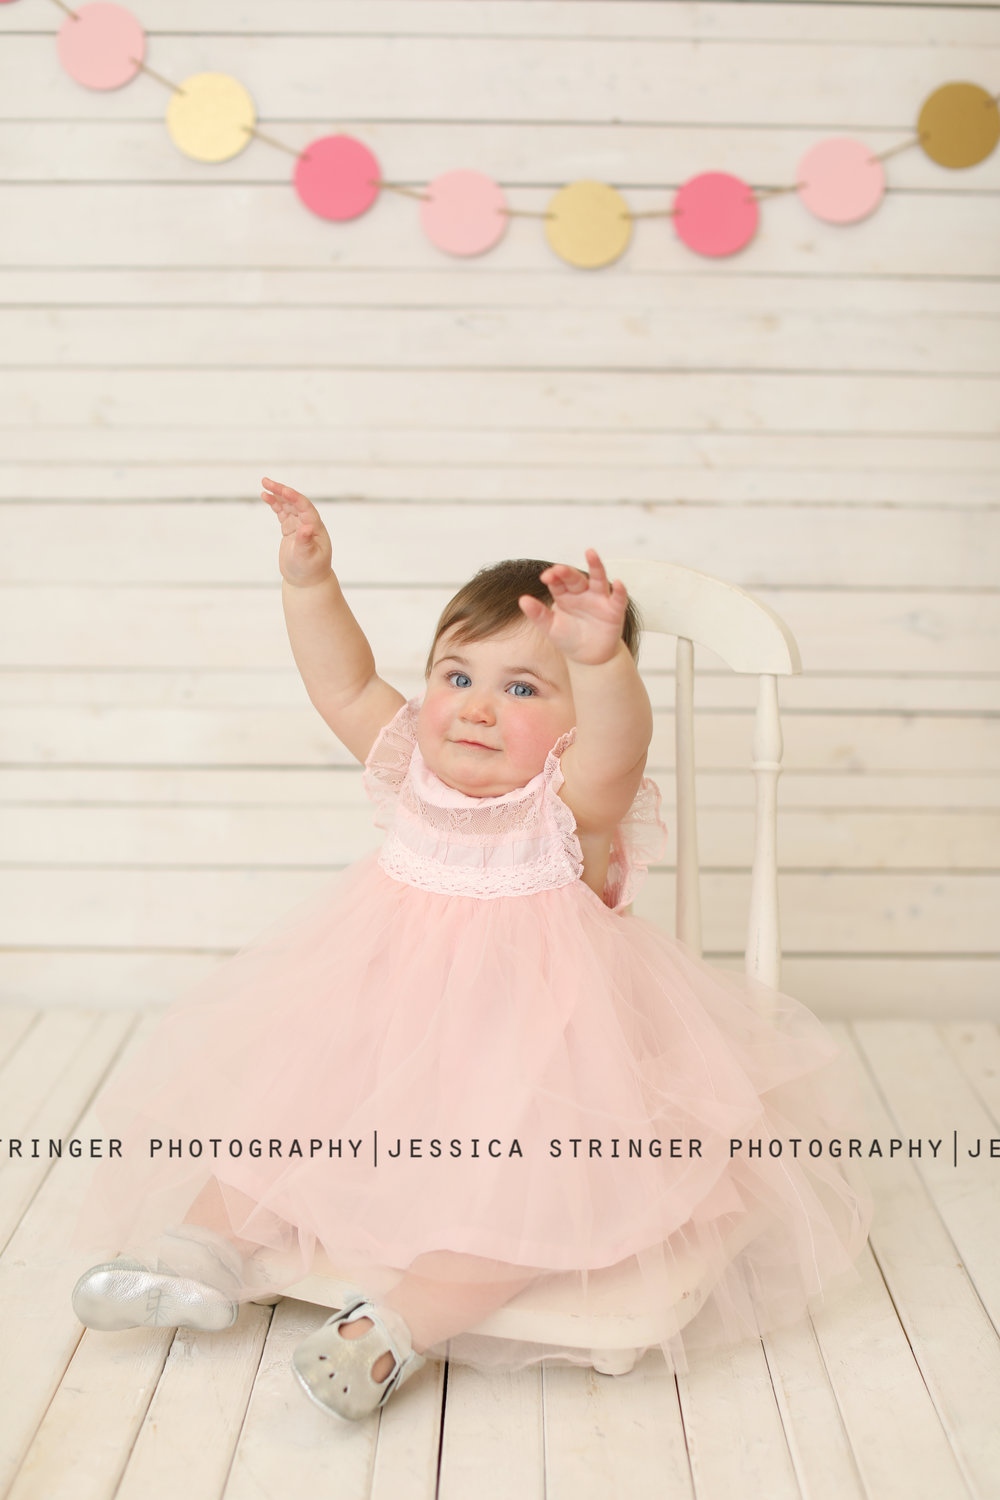 This little lady had the best personality and was full of it for her first birthday photo session!